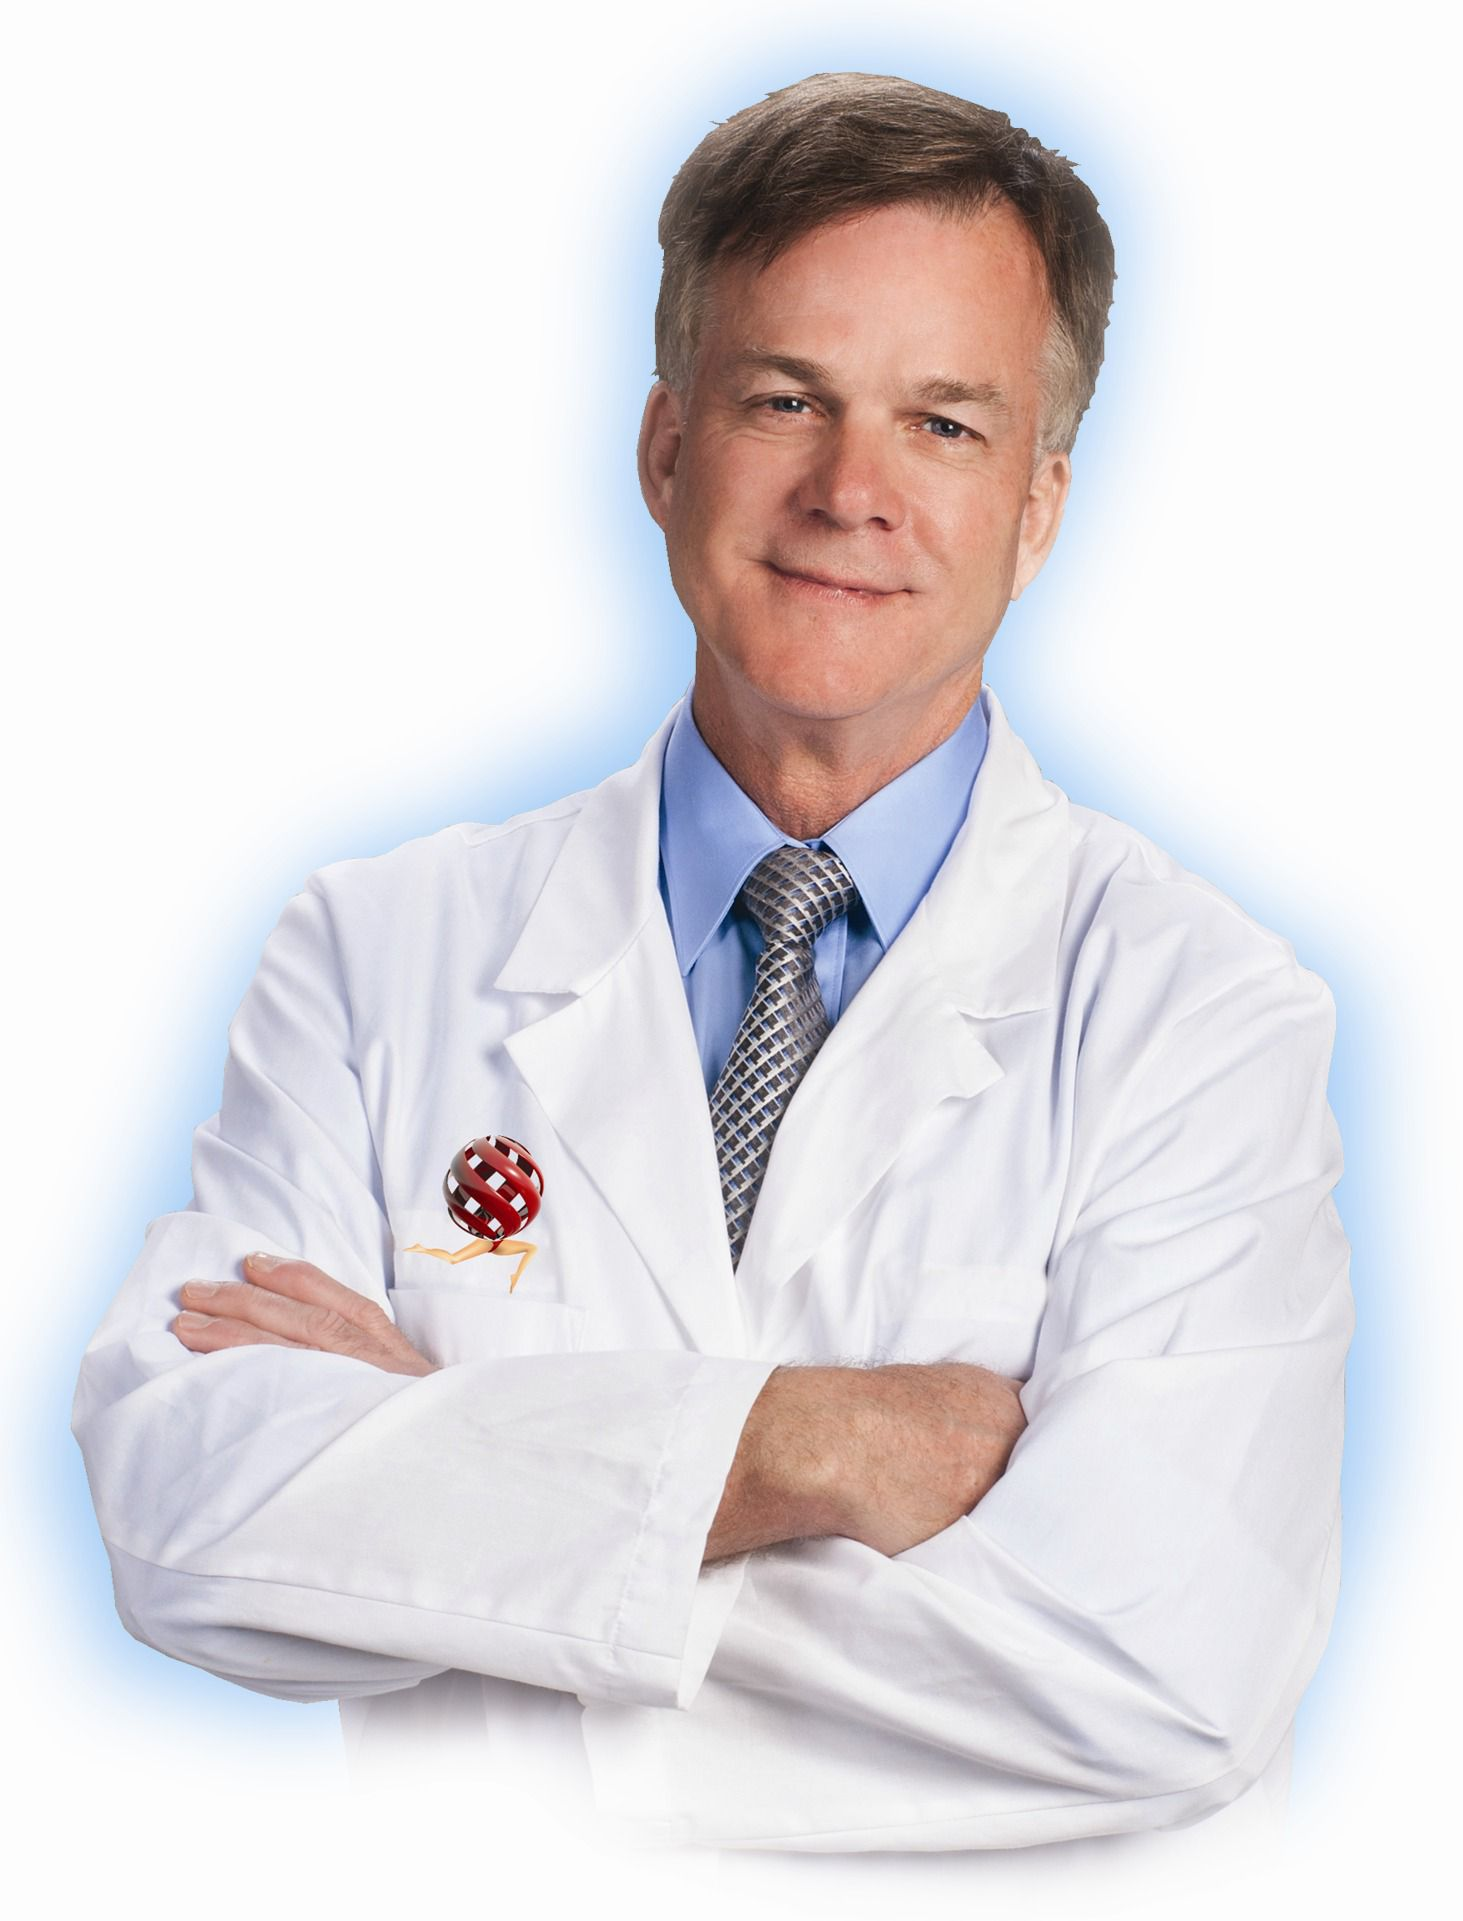 William D Bowers, MD